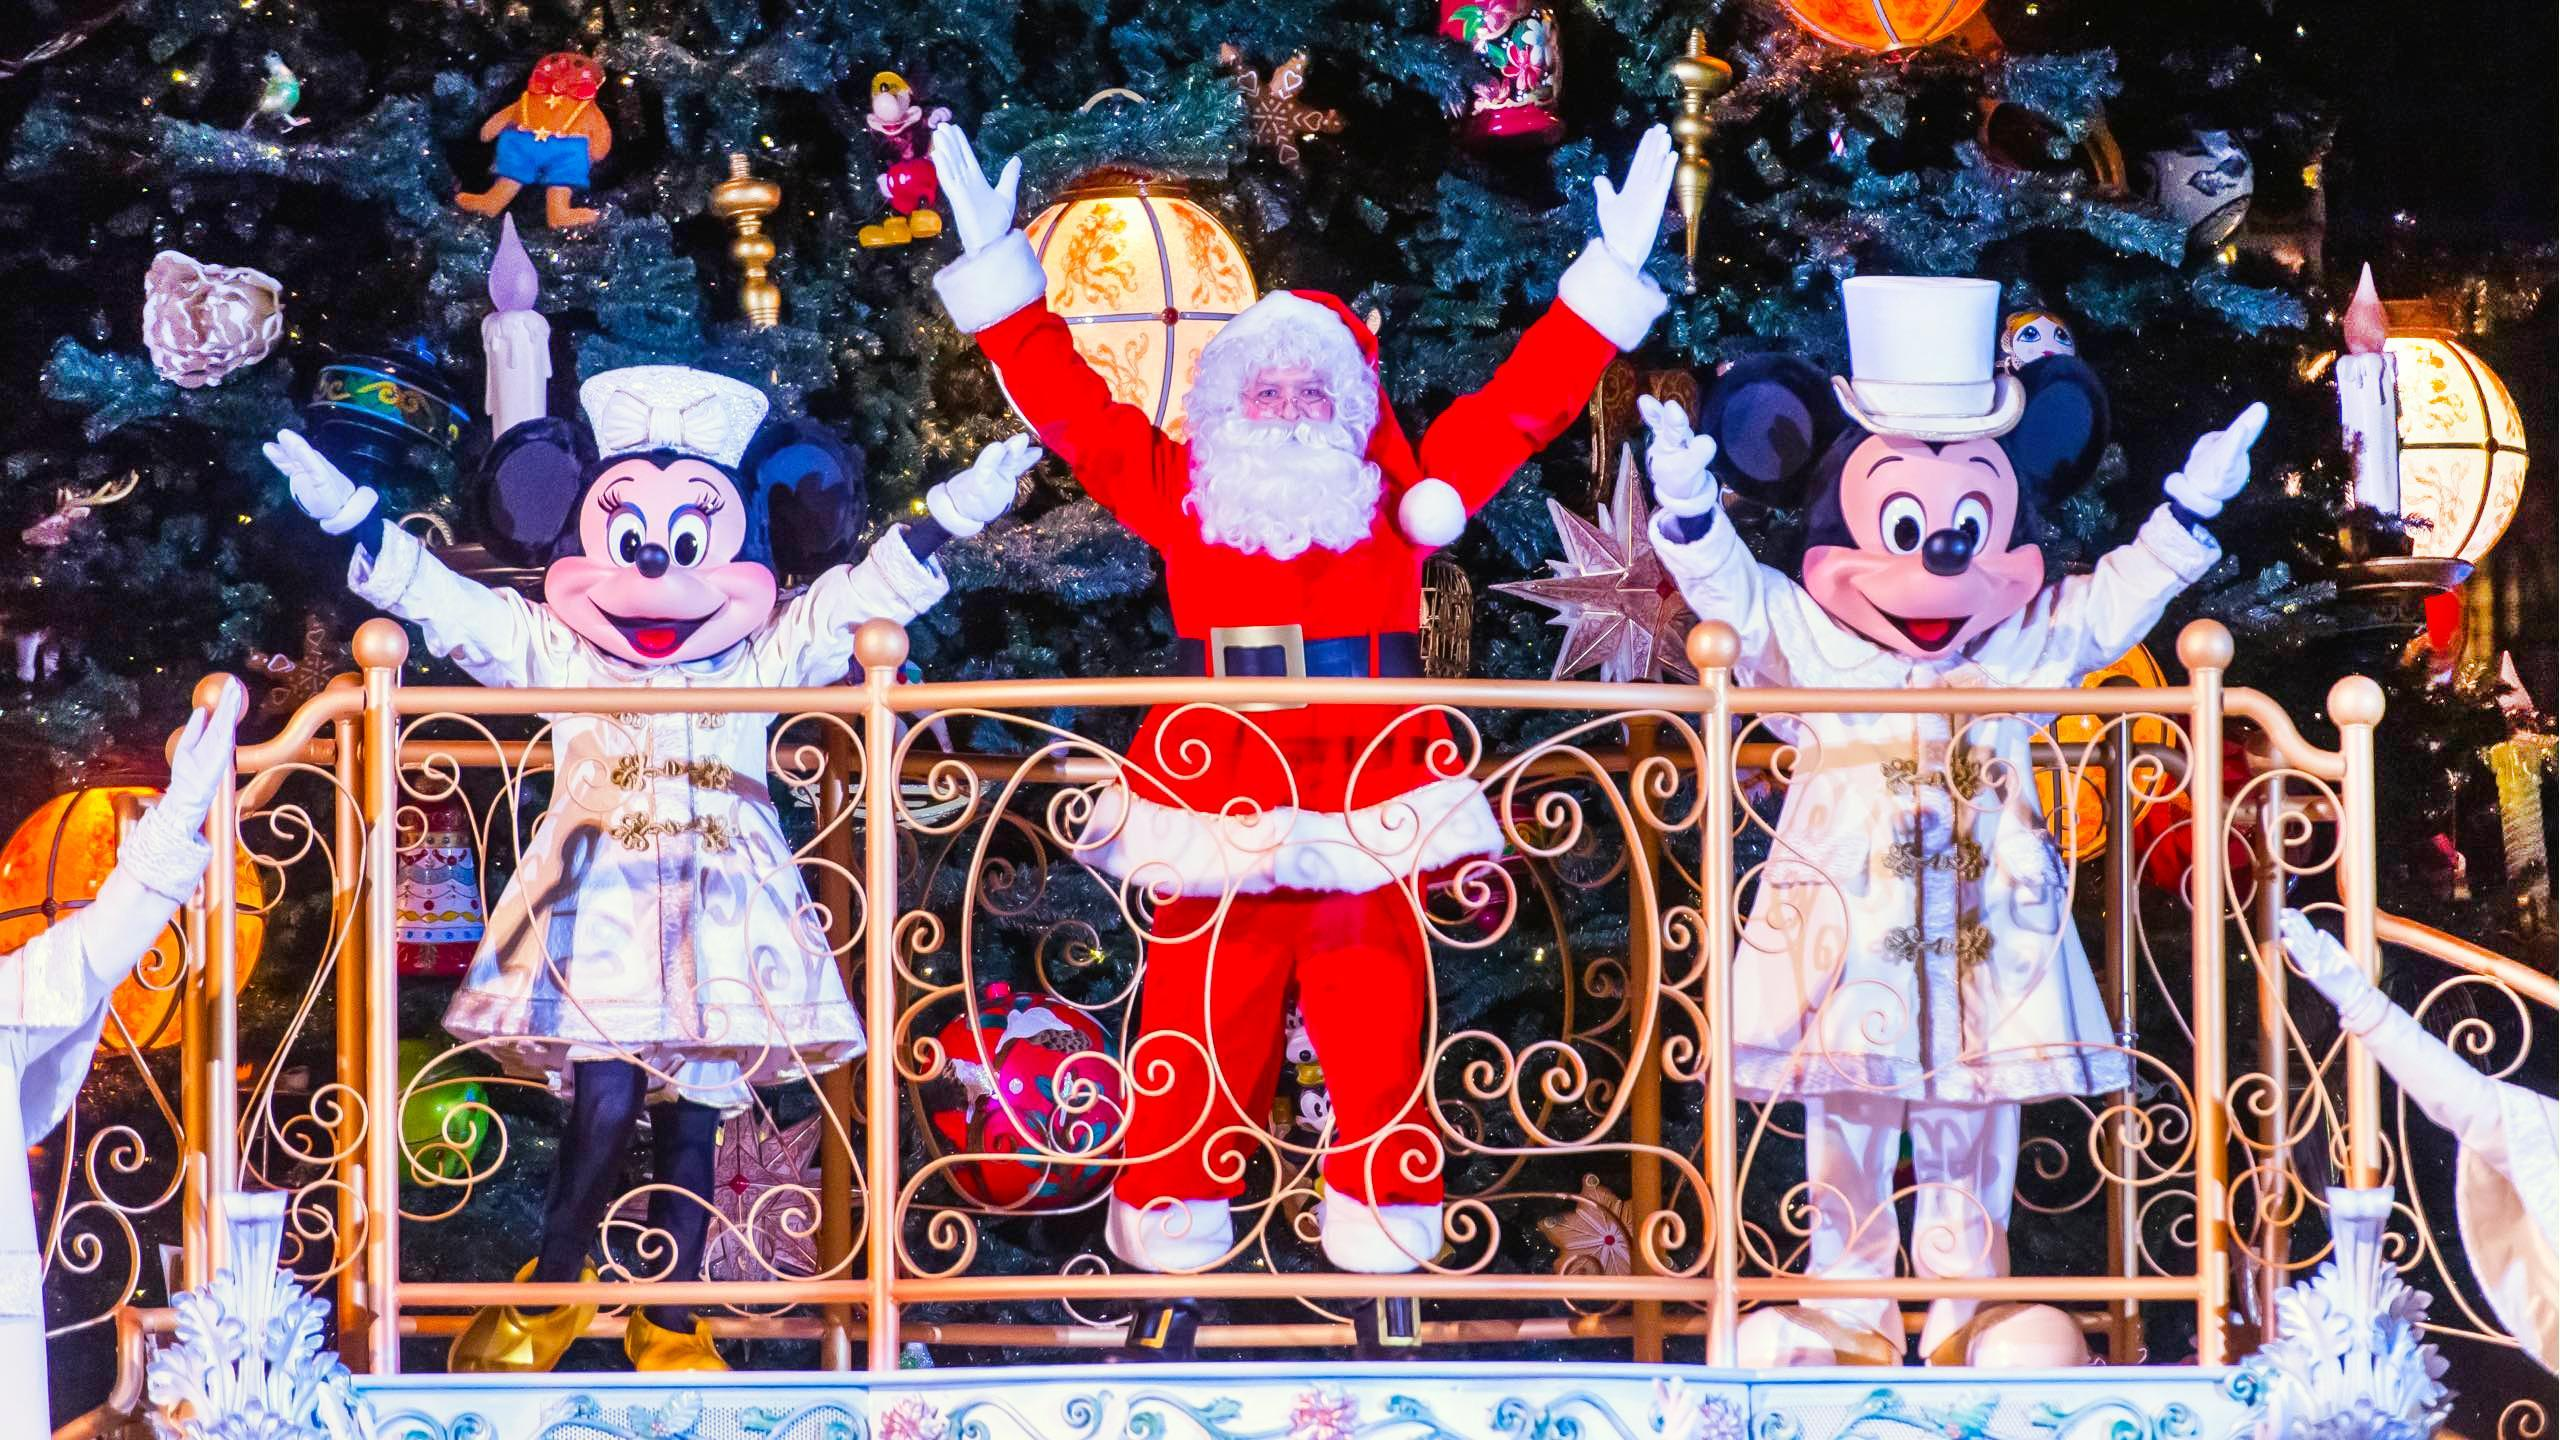 disneyland paris trips this christmas from 129pp including train and hotel and park tickets